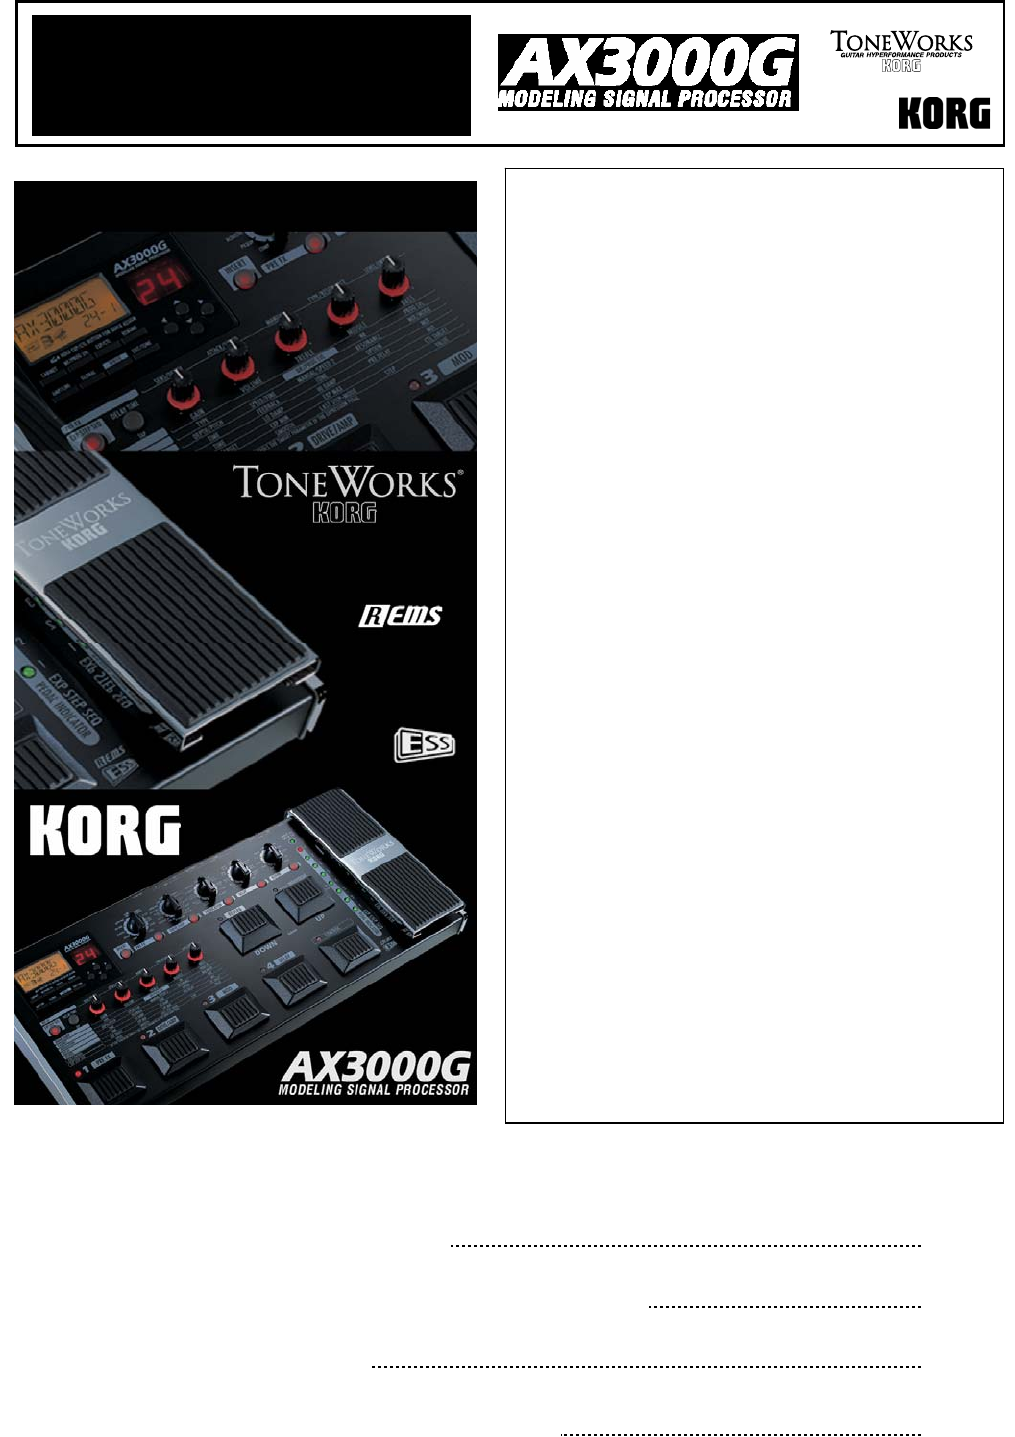 Korg ax3000g user manual | 67 pages.